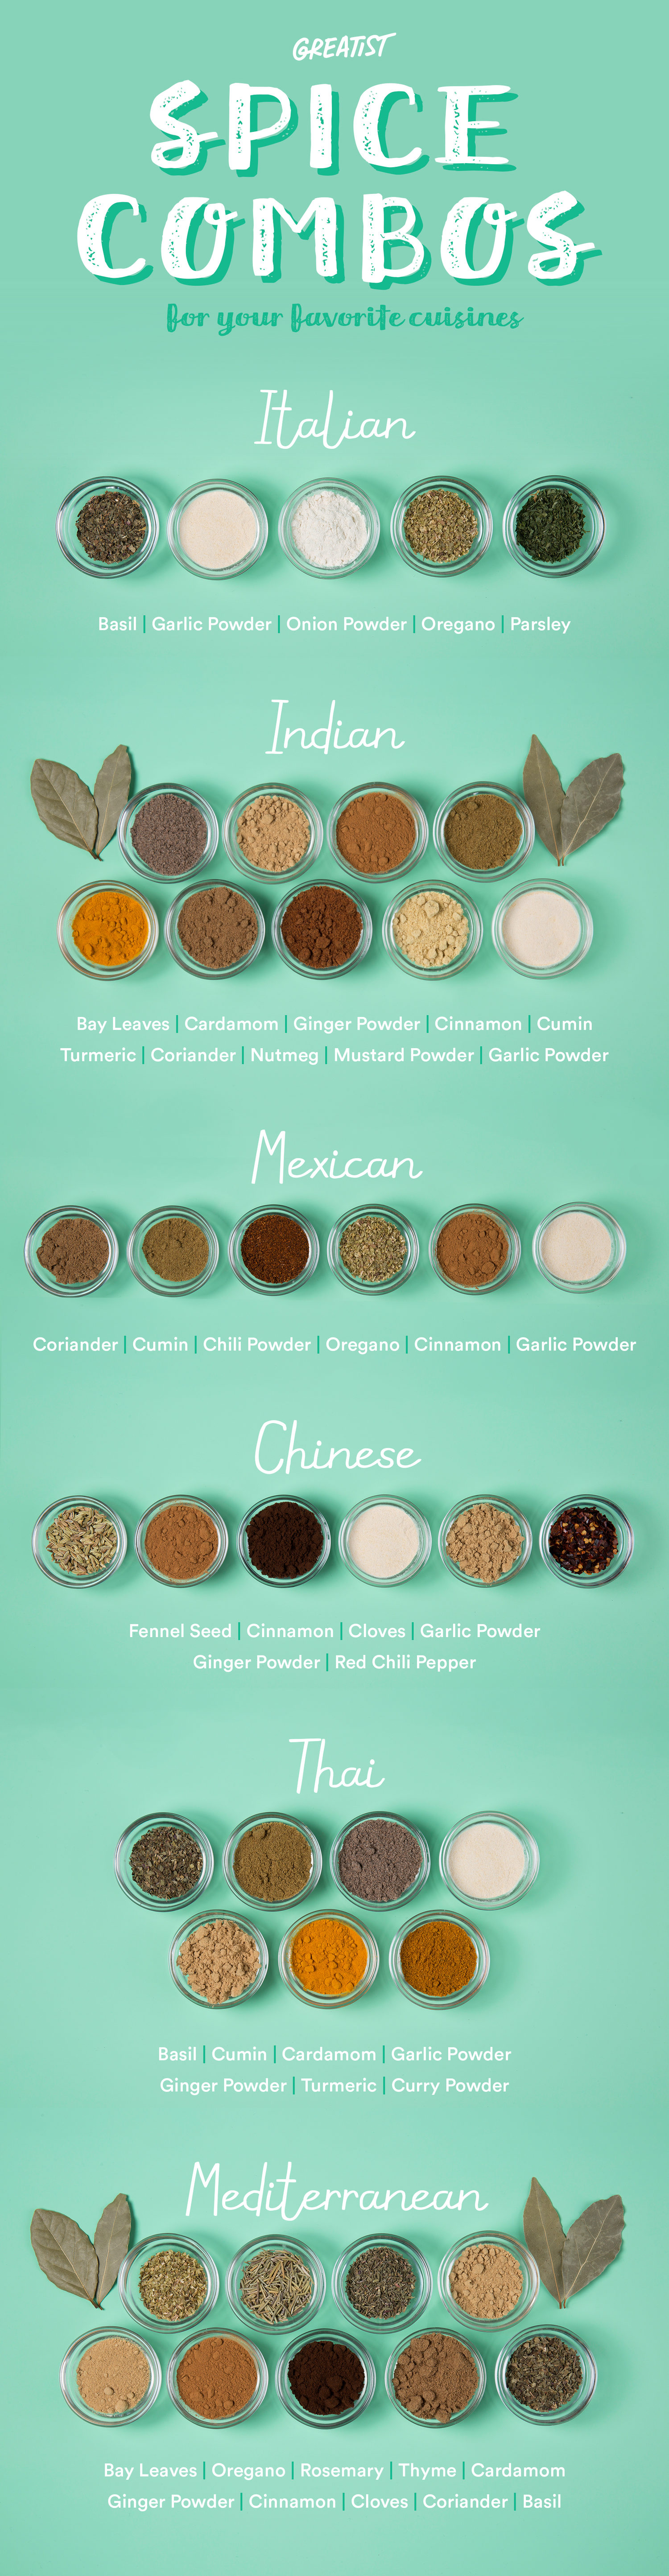 Take Your Dishes To A New Level With These Spice Combos Infographic